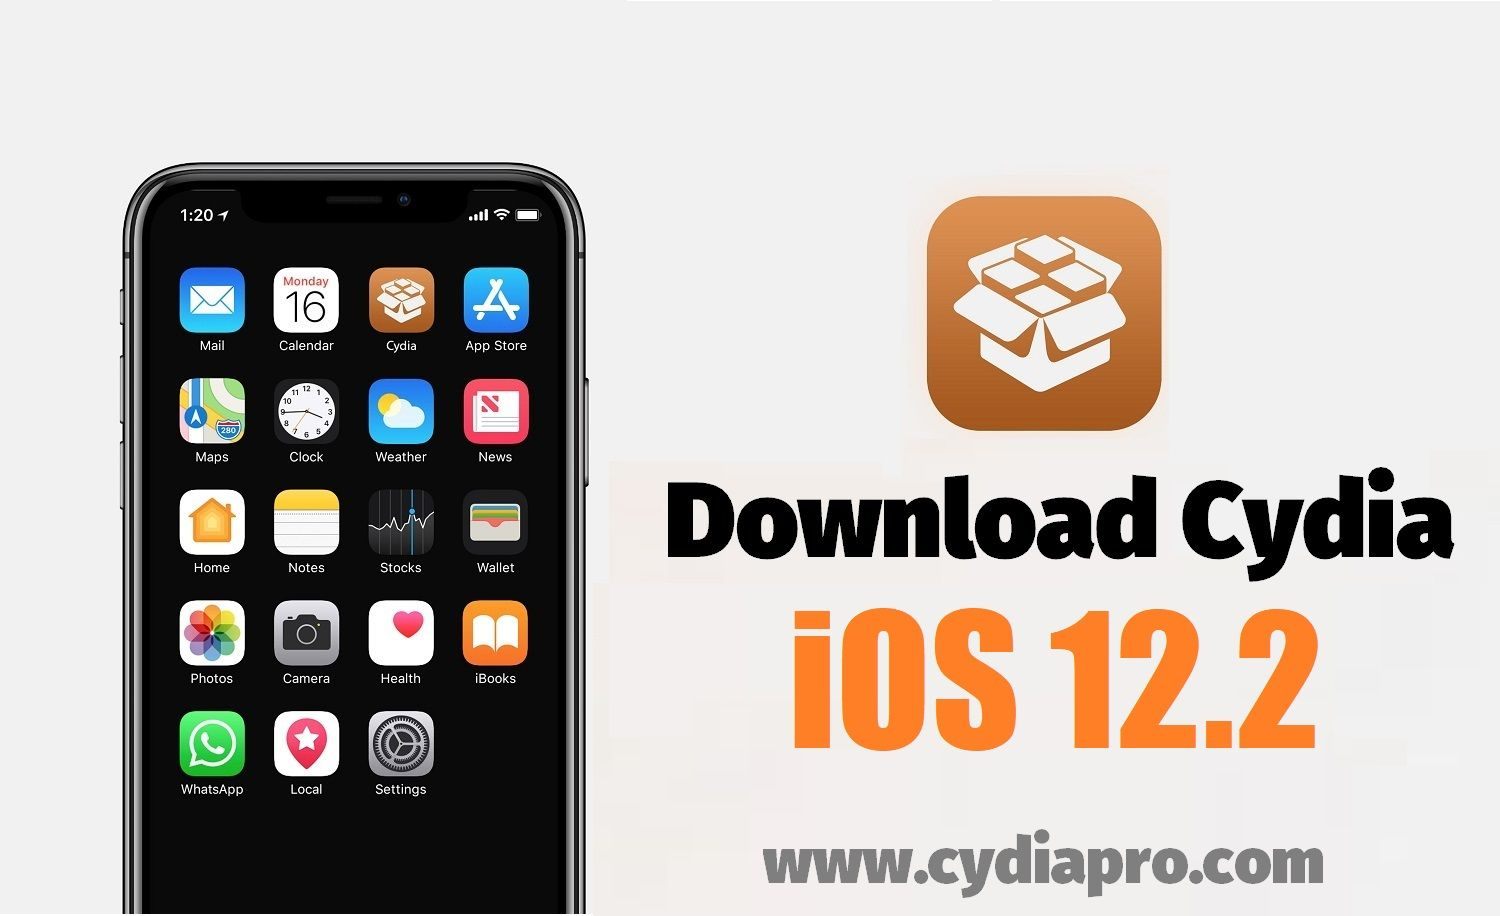 Unlock all your hidden features on your iPhone with Cydia